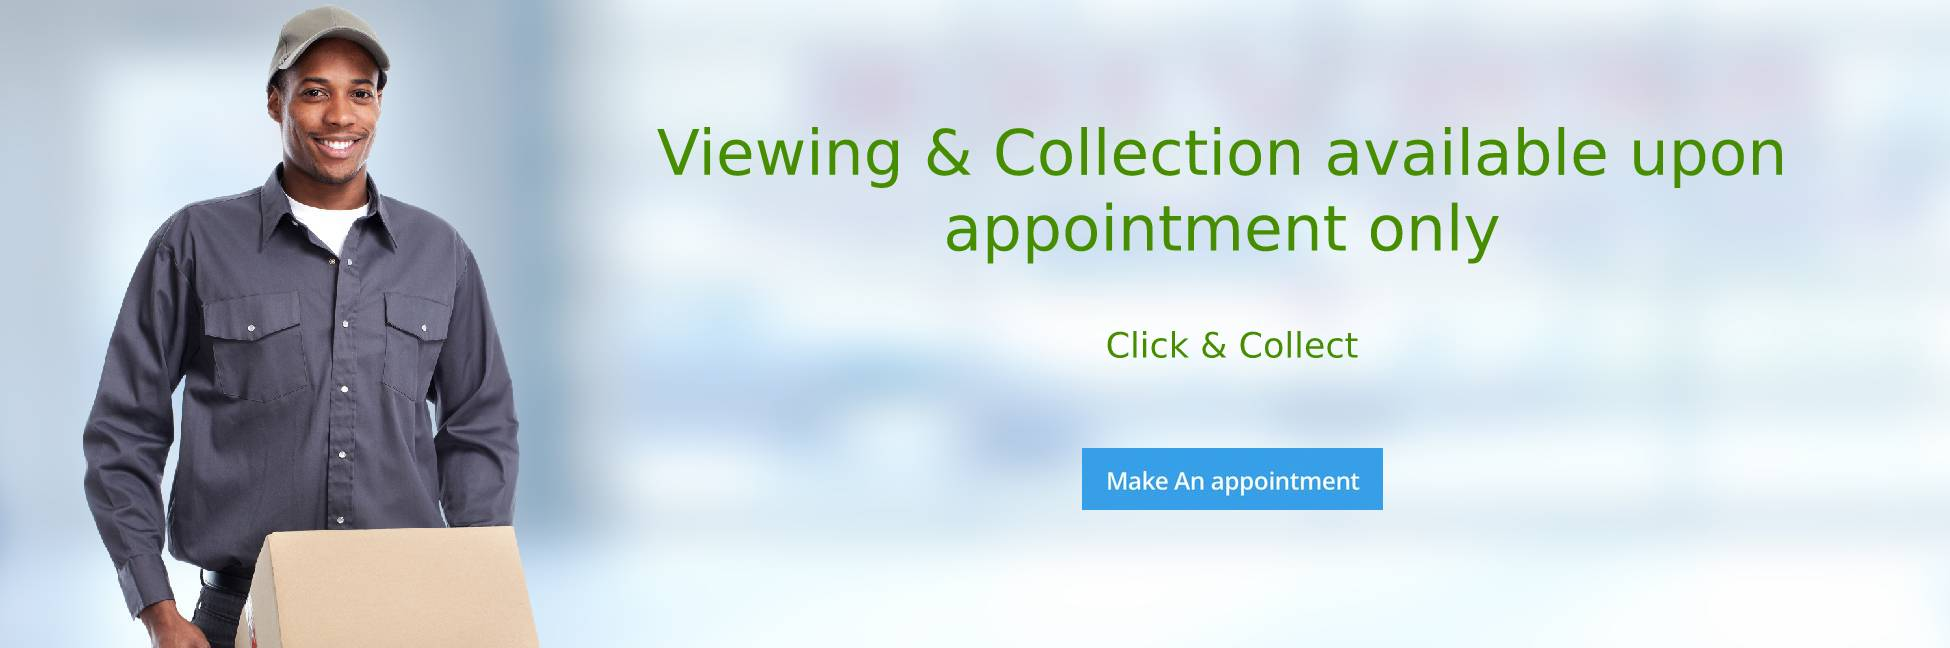 Viewing and Collection available upon appointment only